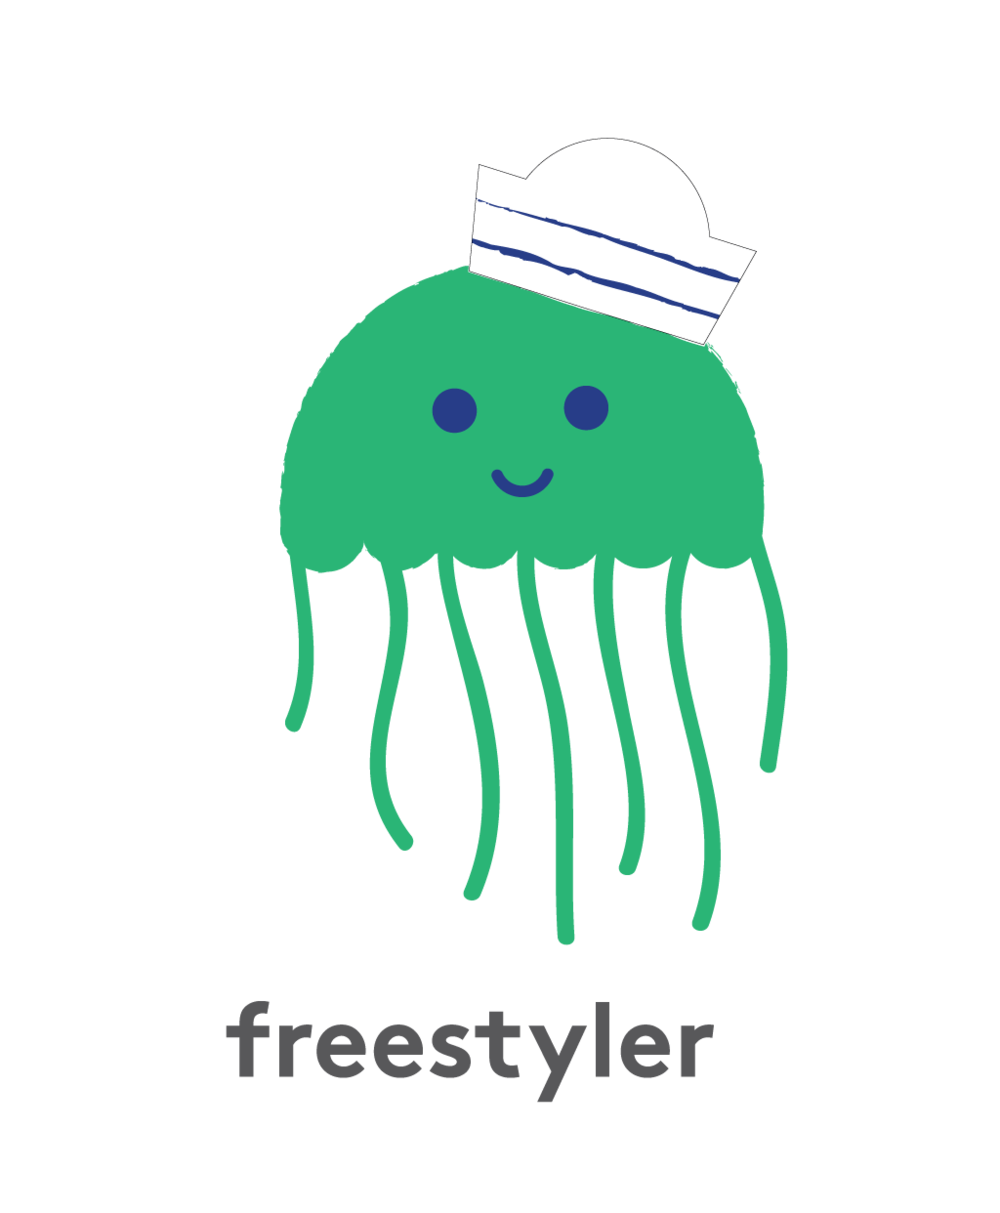 Jellyfish: Freestyler